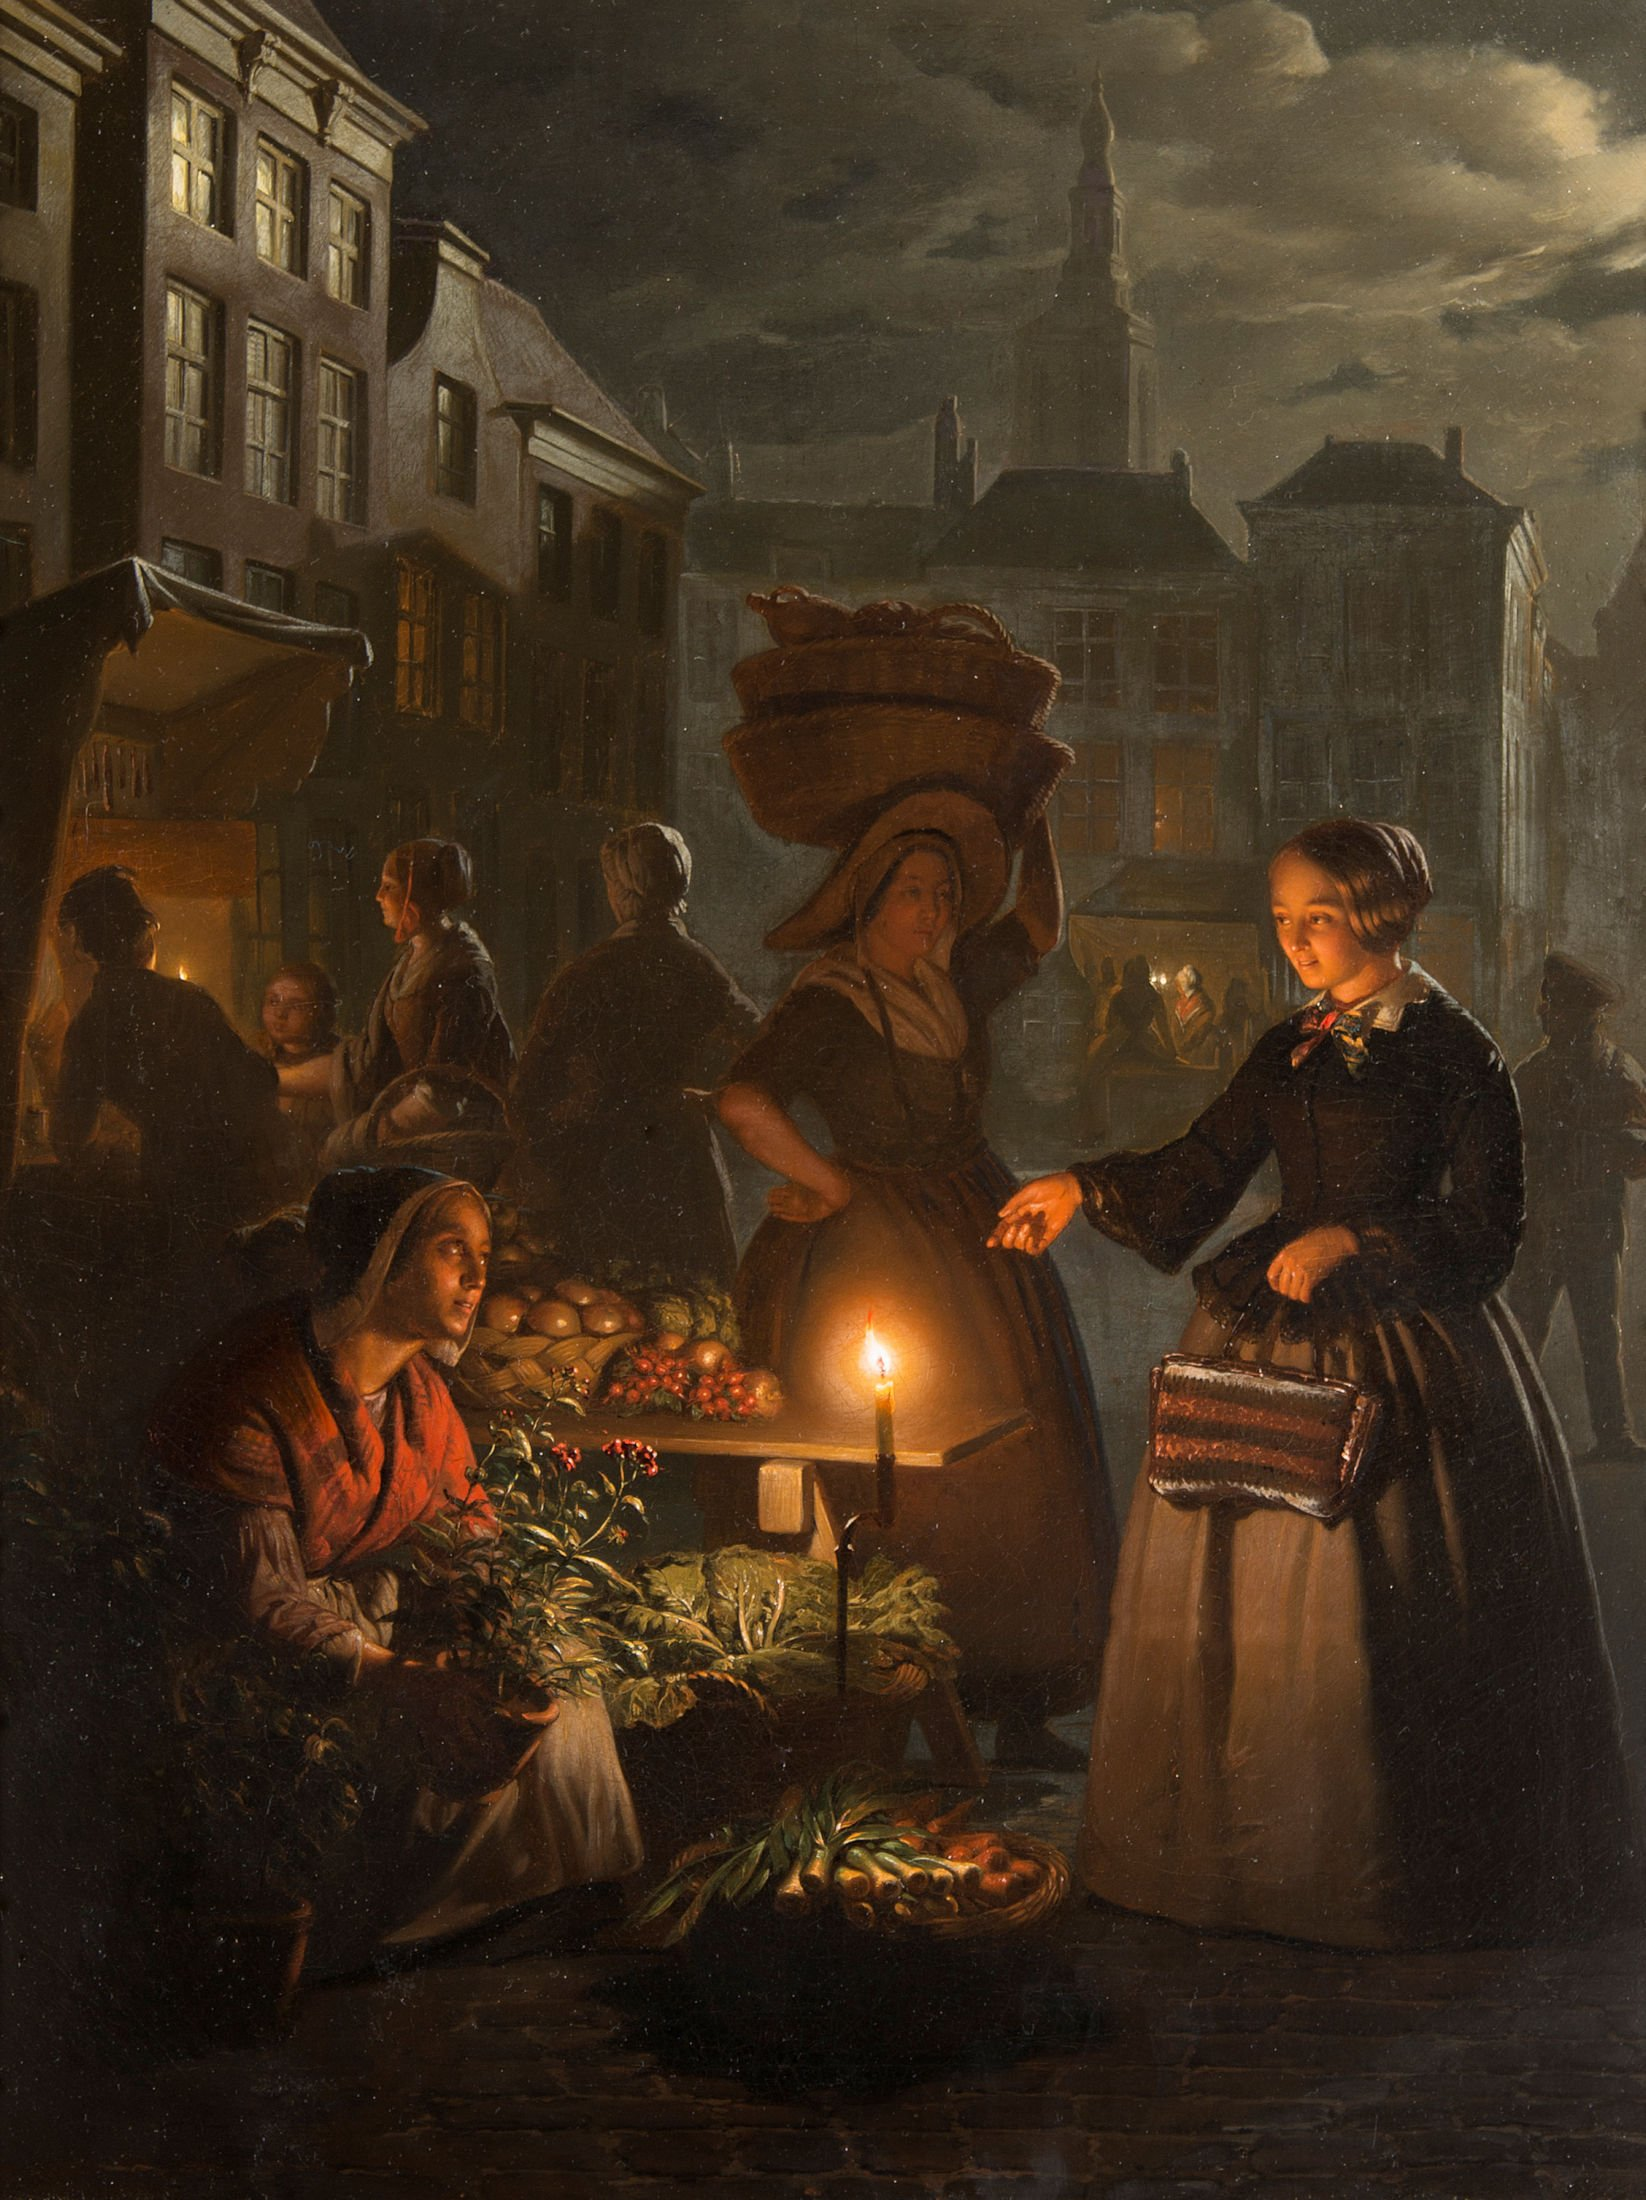 4632 Petrus van Schendel - The Night Market - Unframed